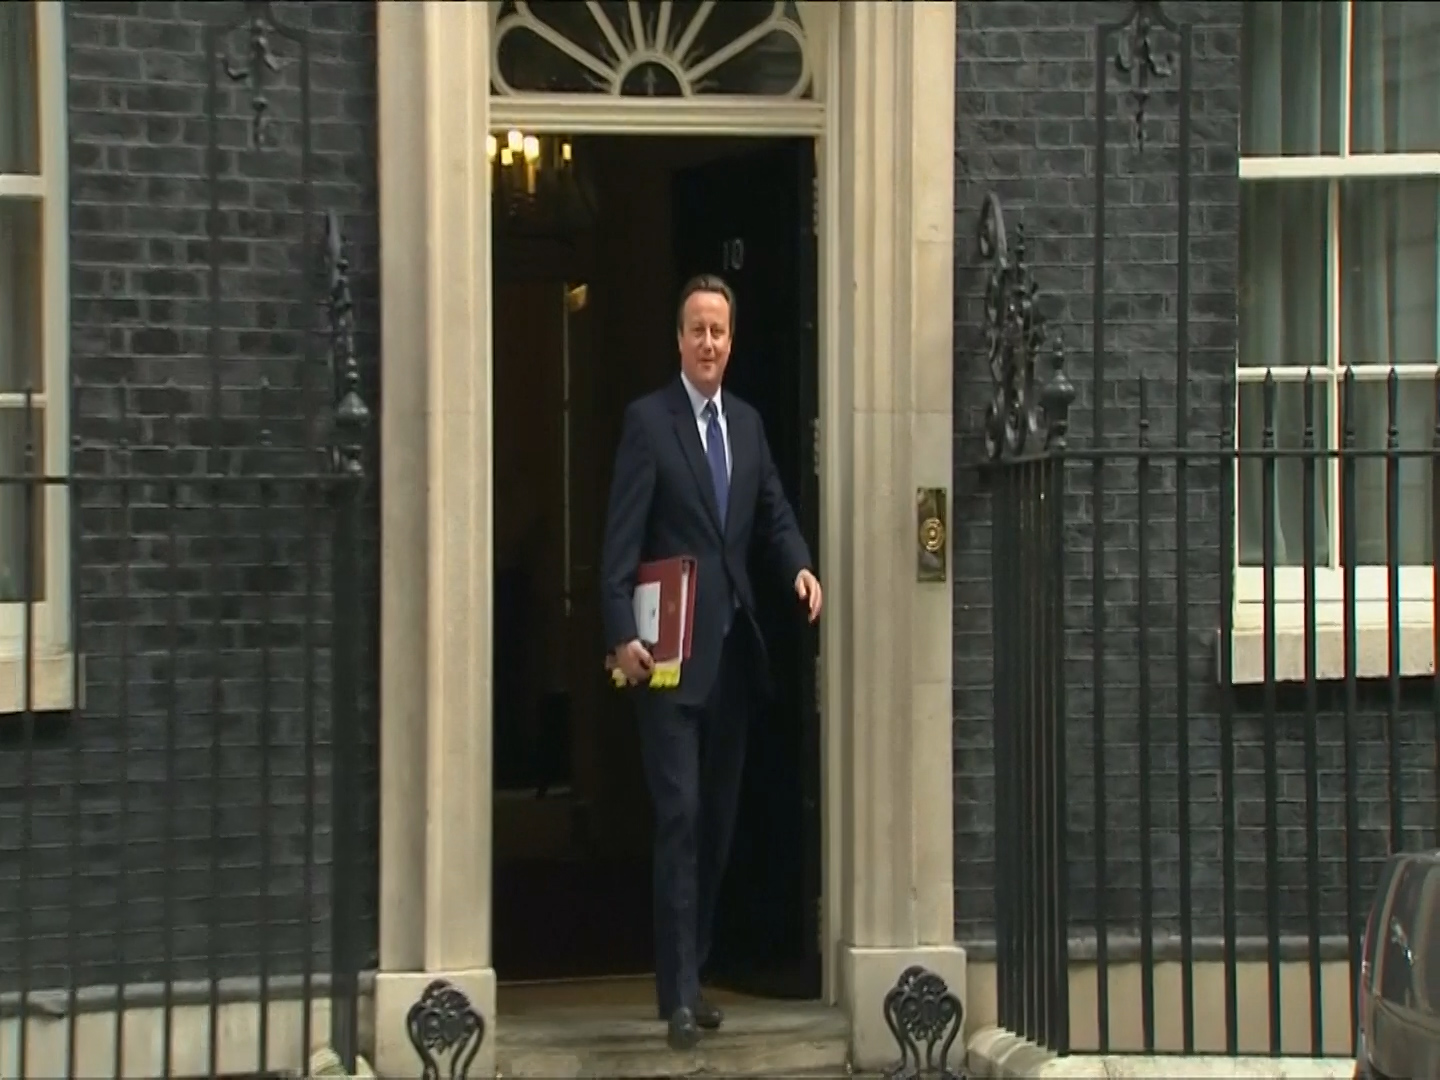 David Cameron leaves for PMQ's